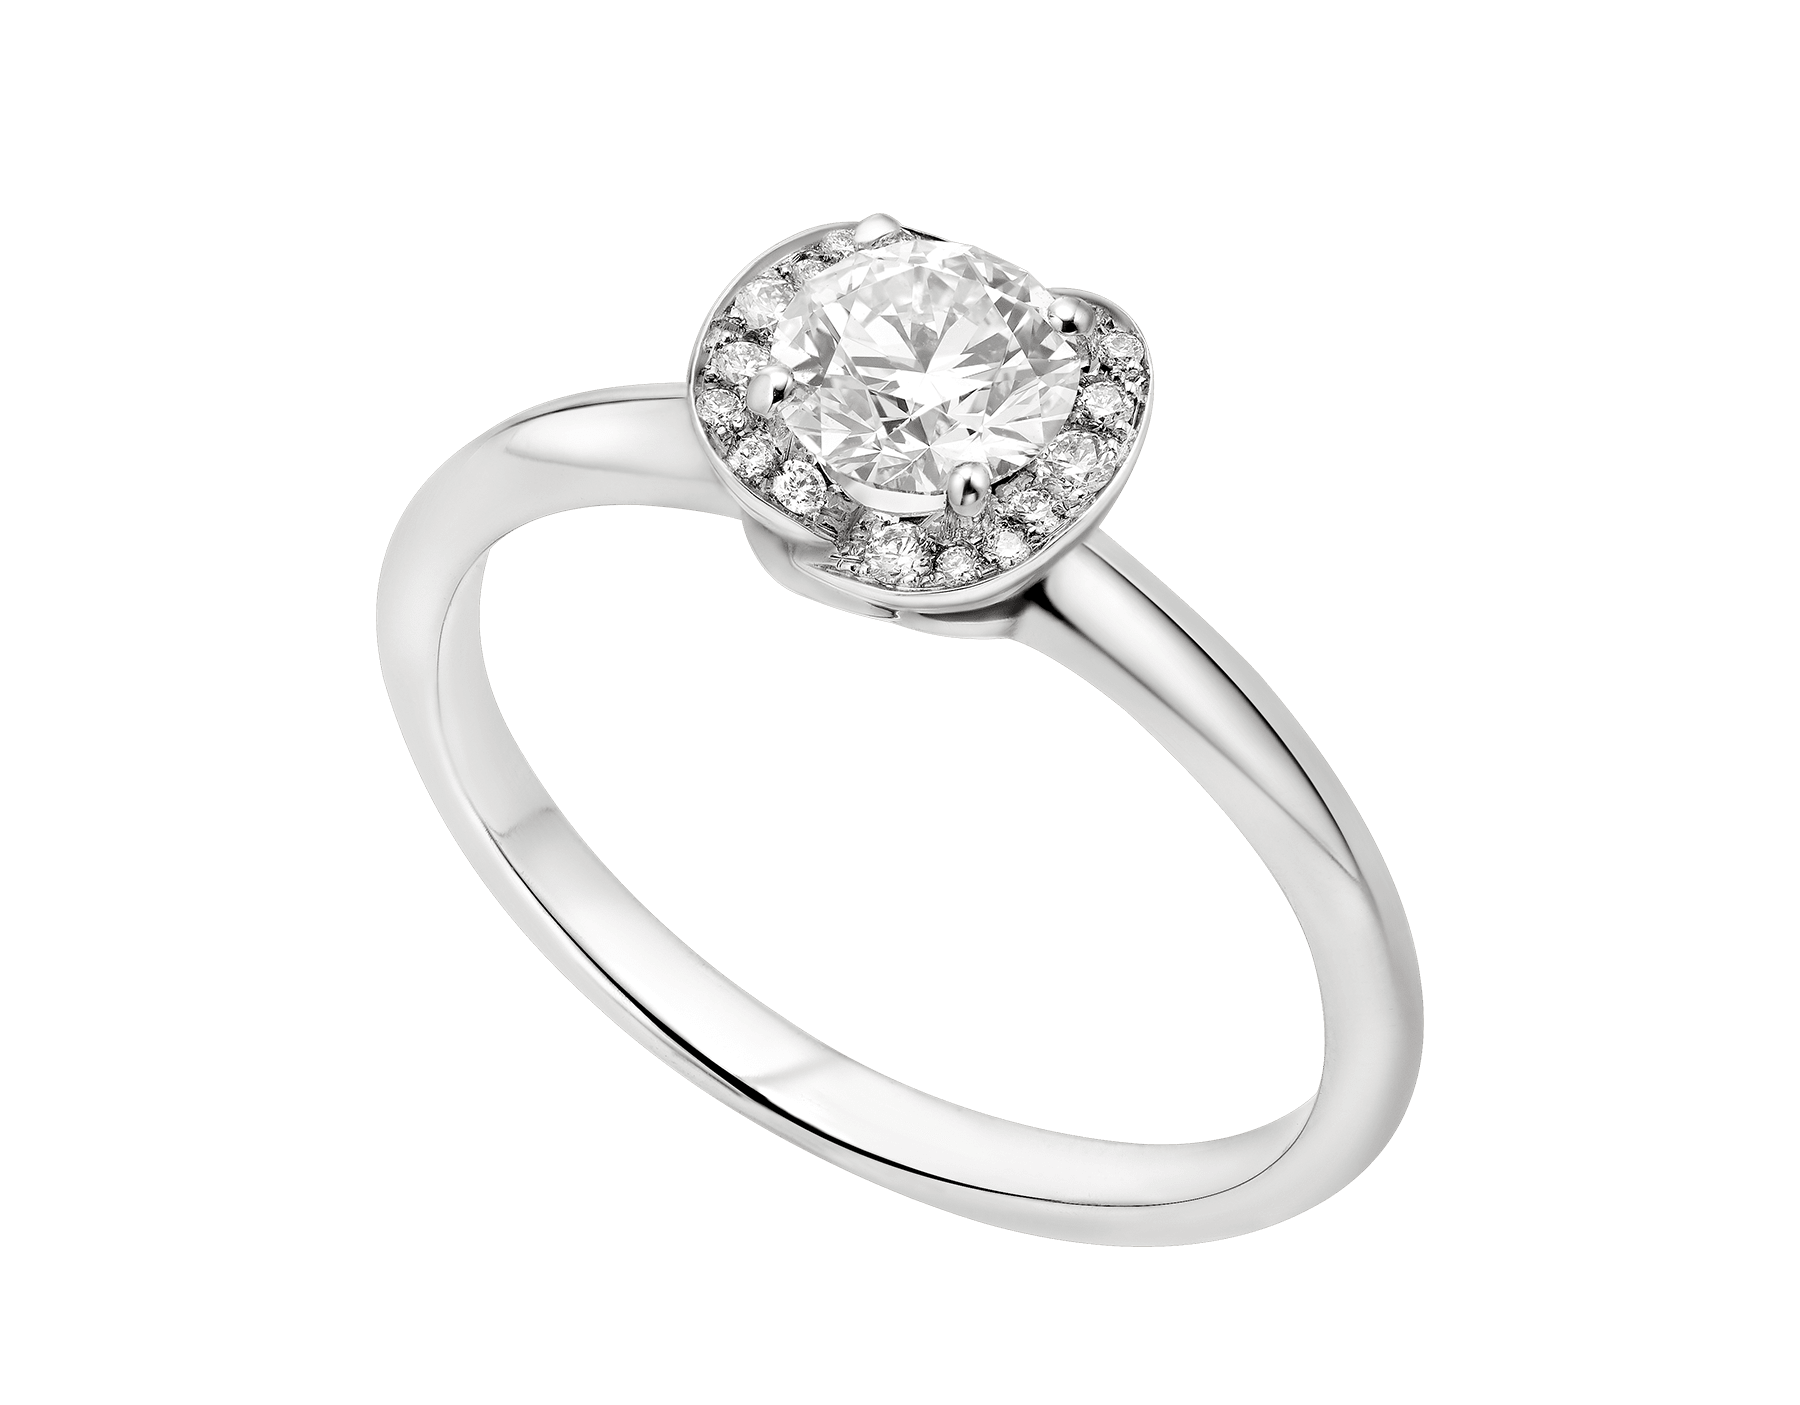 Incontro d'Amore platinum ring set with a round brilliant-cut diamond and a halo of pavé diamonds. 355384 image 1